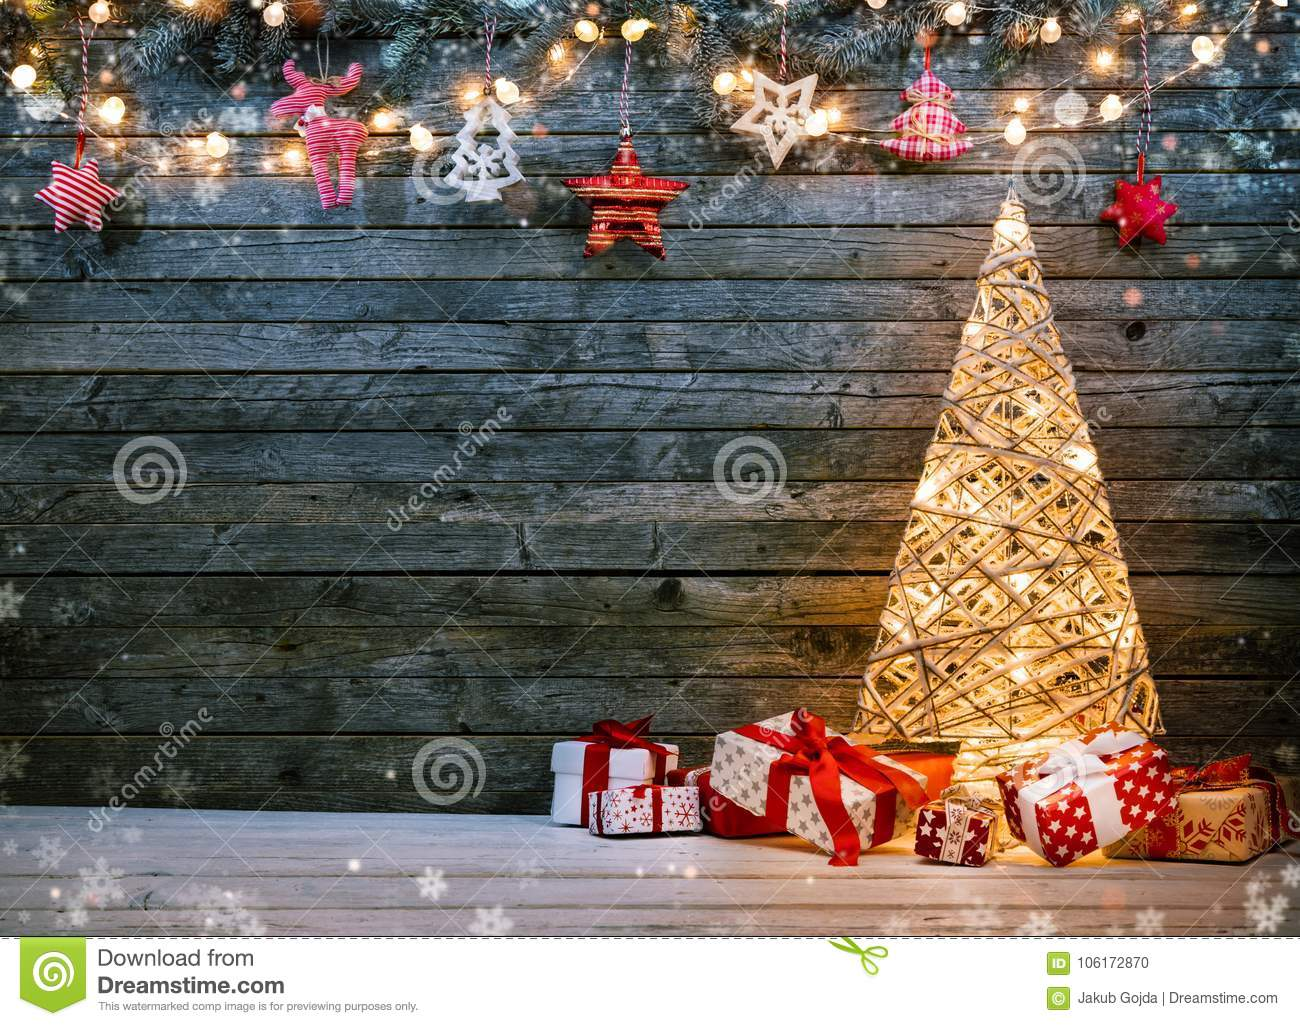 Holidays background with illuminated Christmas tree, gifts and d